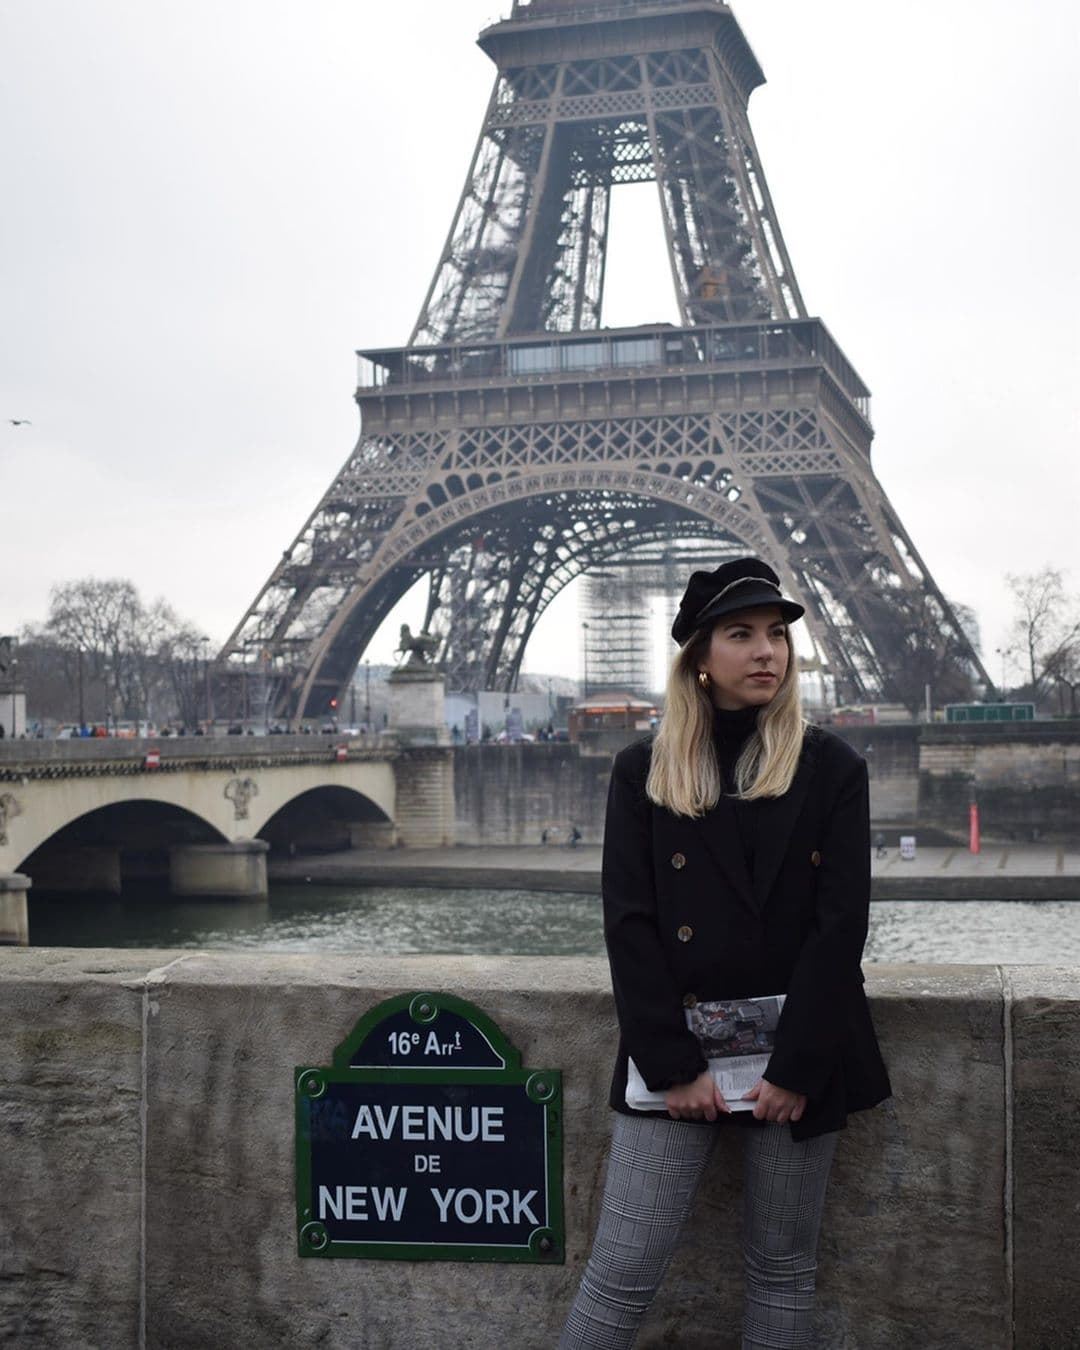 Woman standing beside Avenue de New York sign in front of the Eiffel Tower